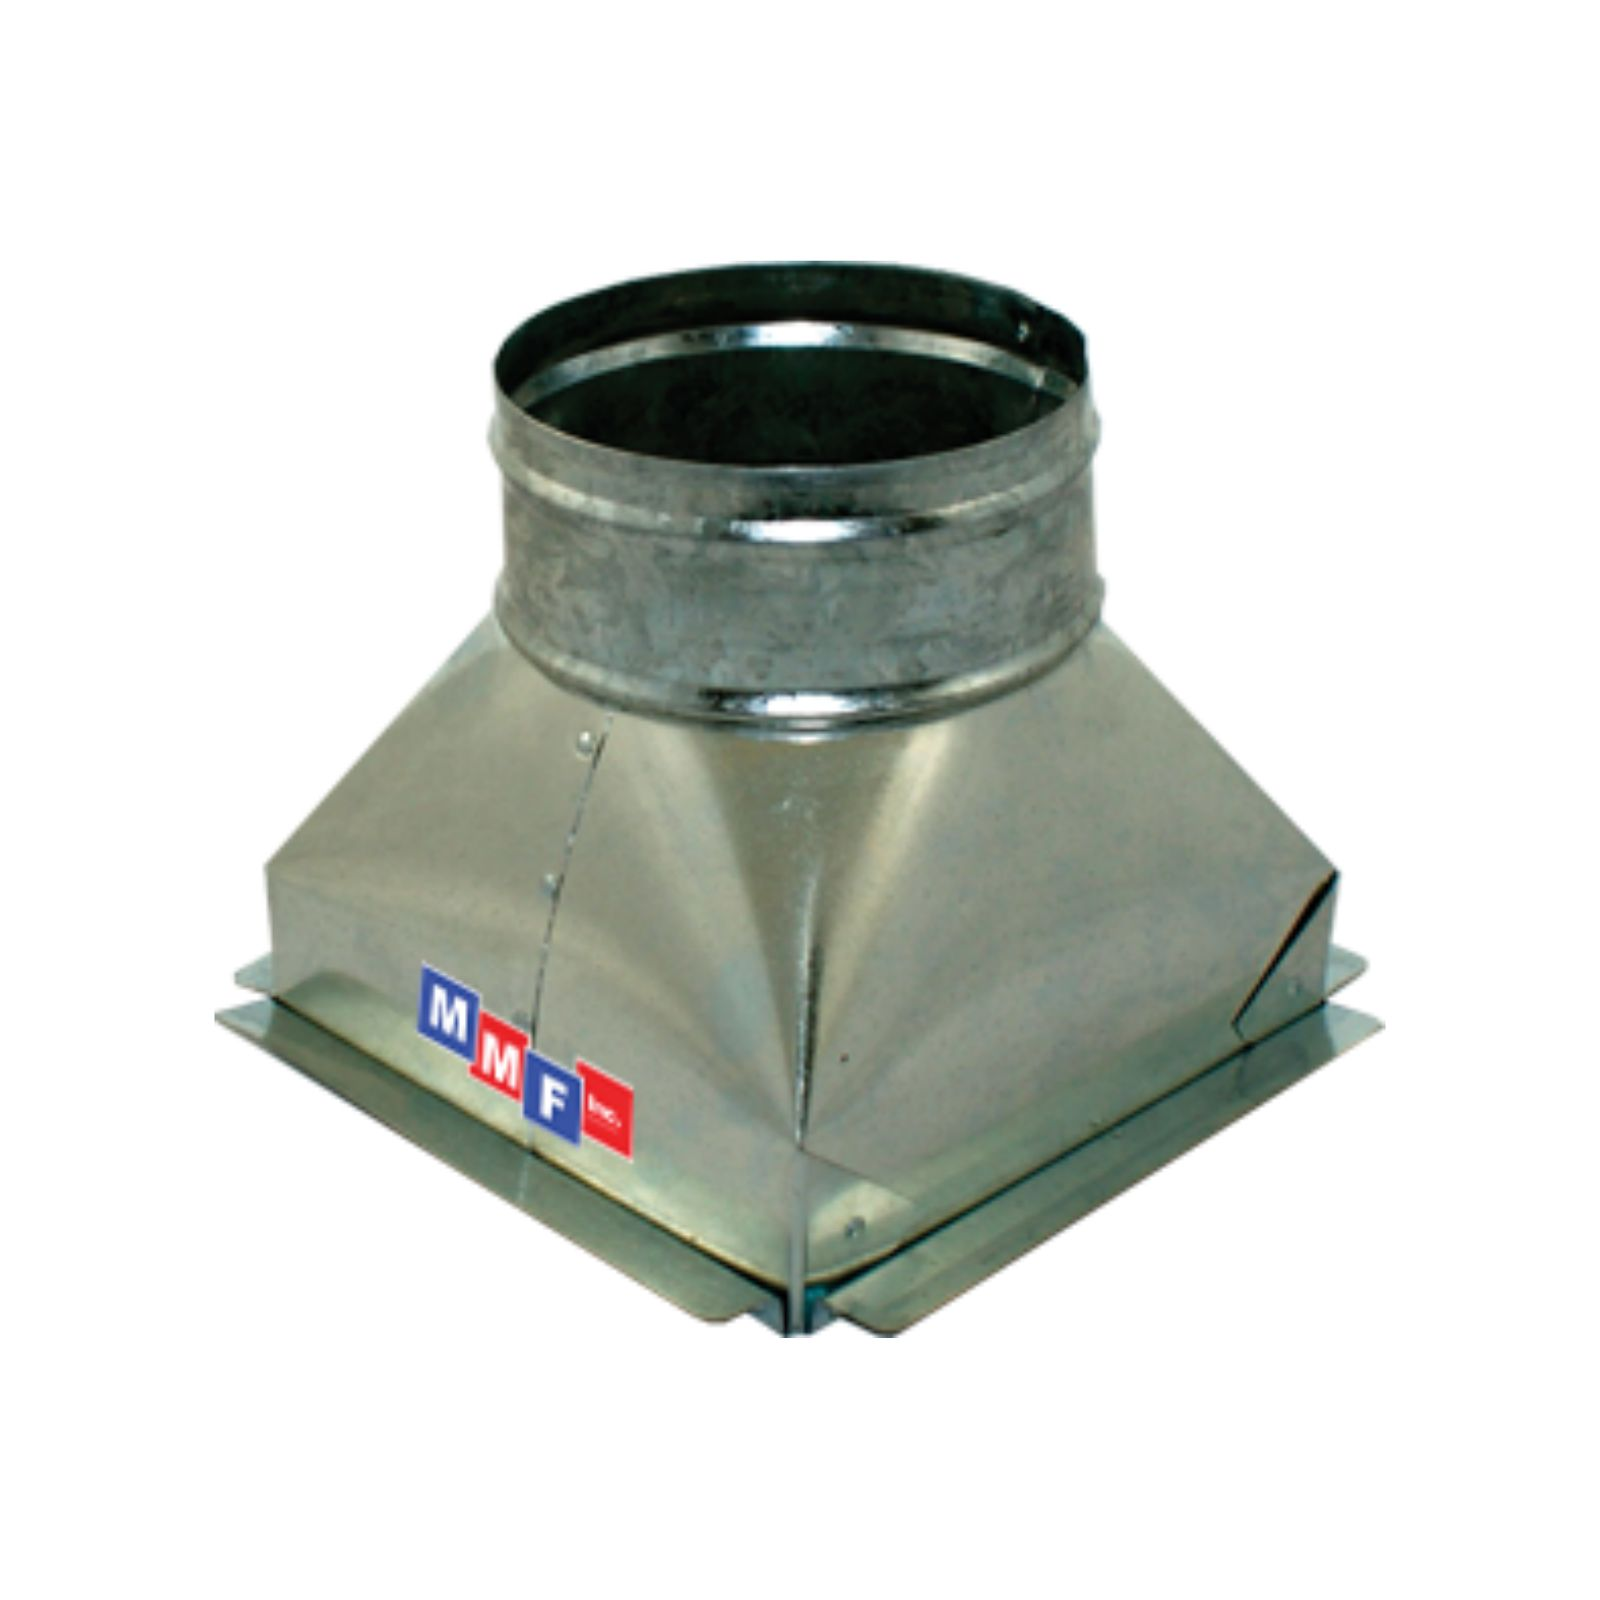 "Modular Metal BTSCG060605P - Sealed Tapered Ceiling Box 06"" X 06"" X 05"" Round - With Plaster Ground Flange - 30 Gauge"